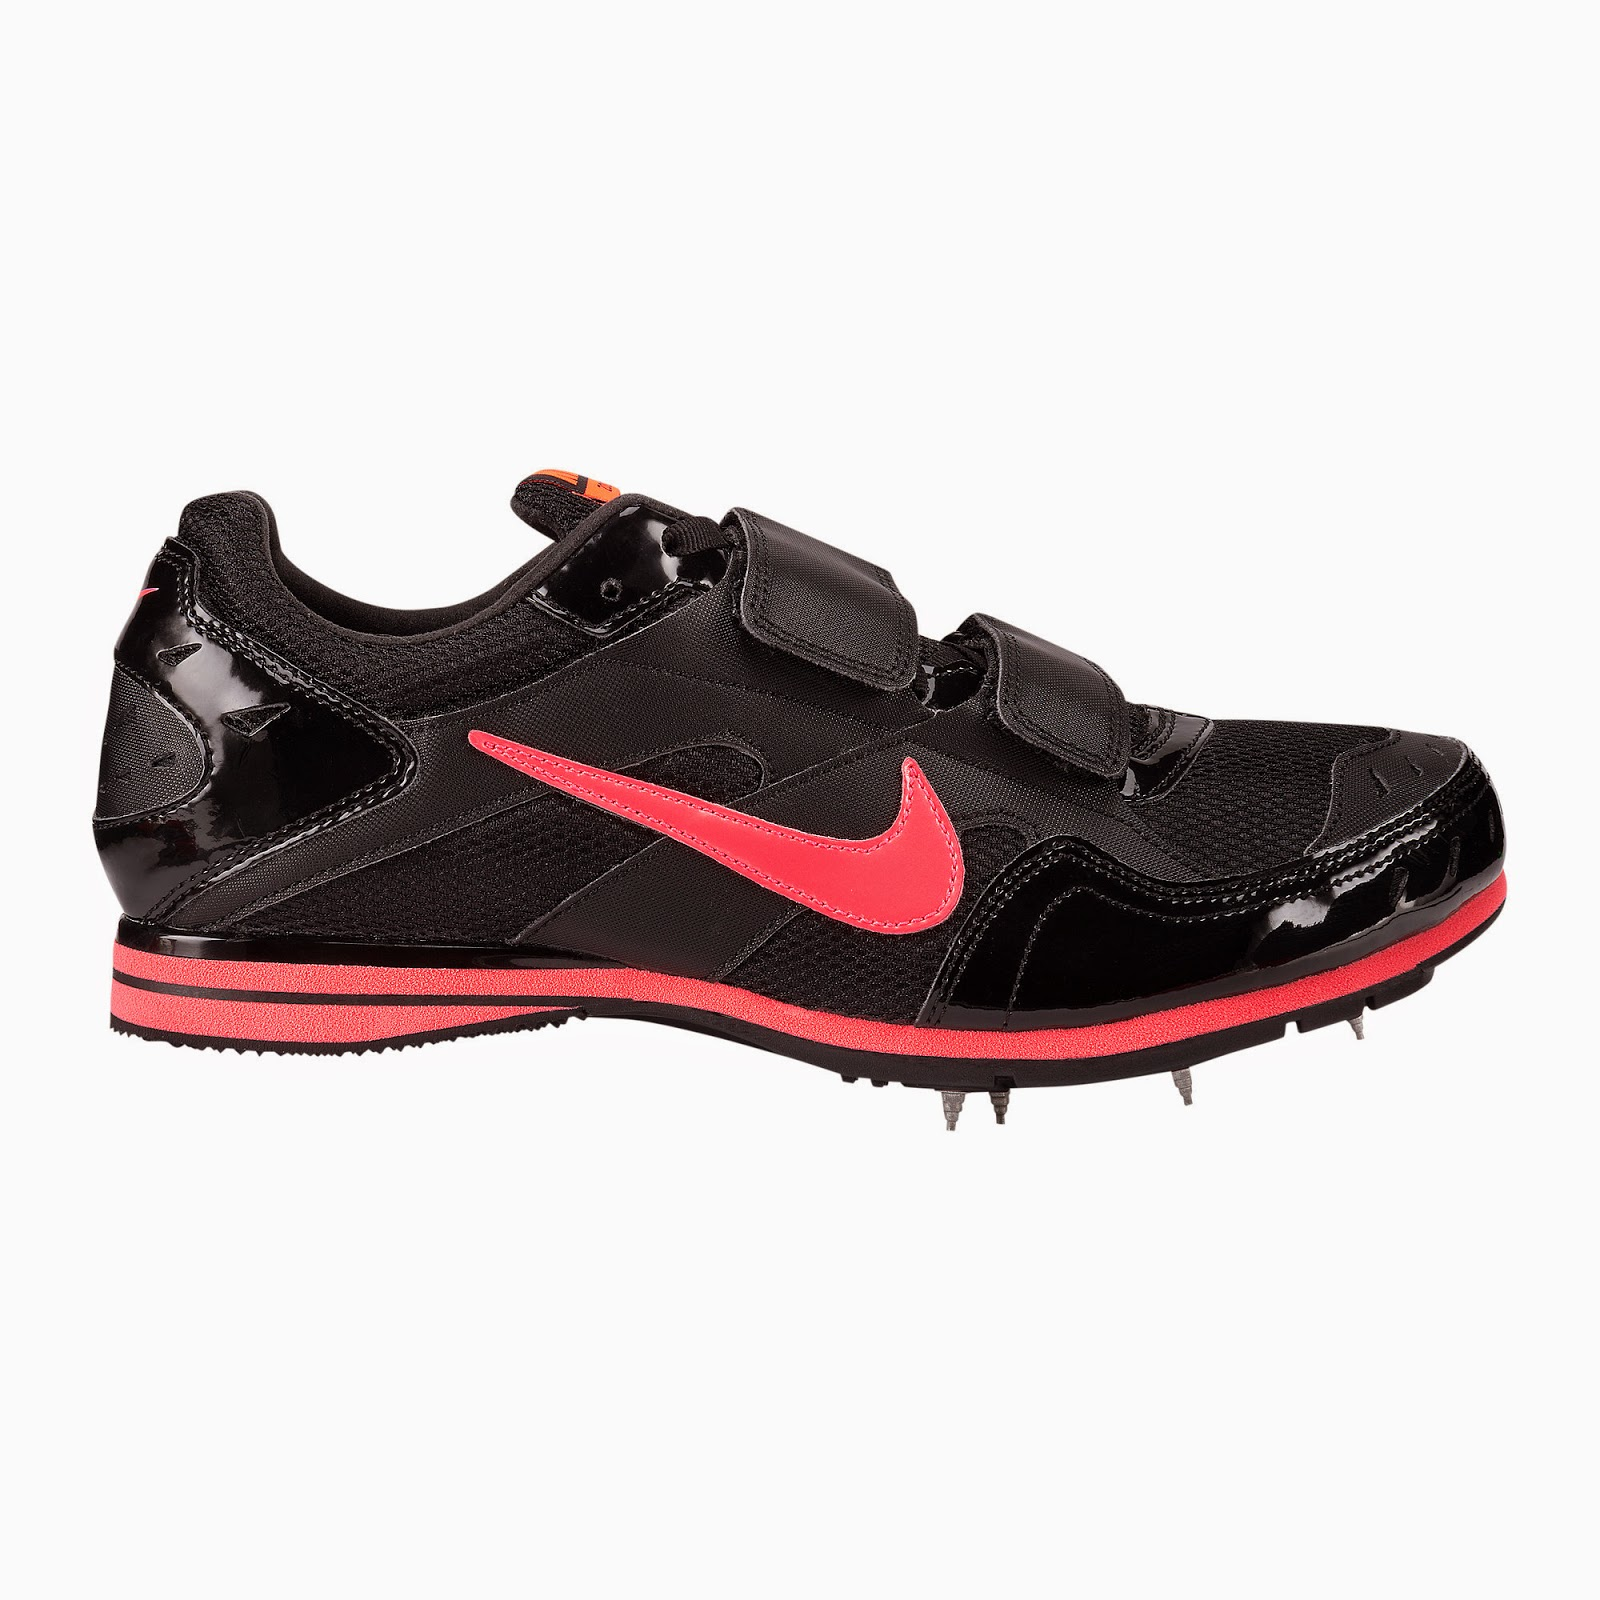 Nike Track and Field Spikes and Shoes 2014